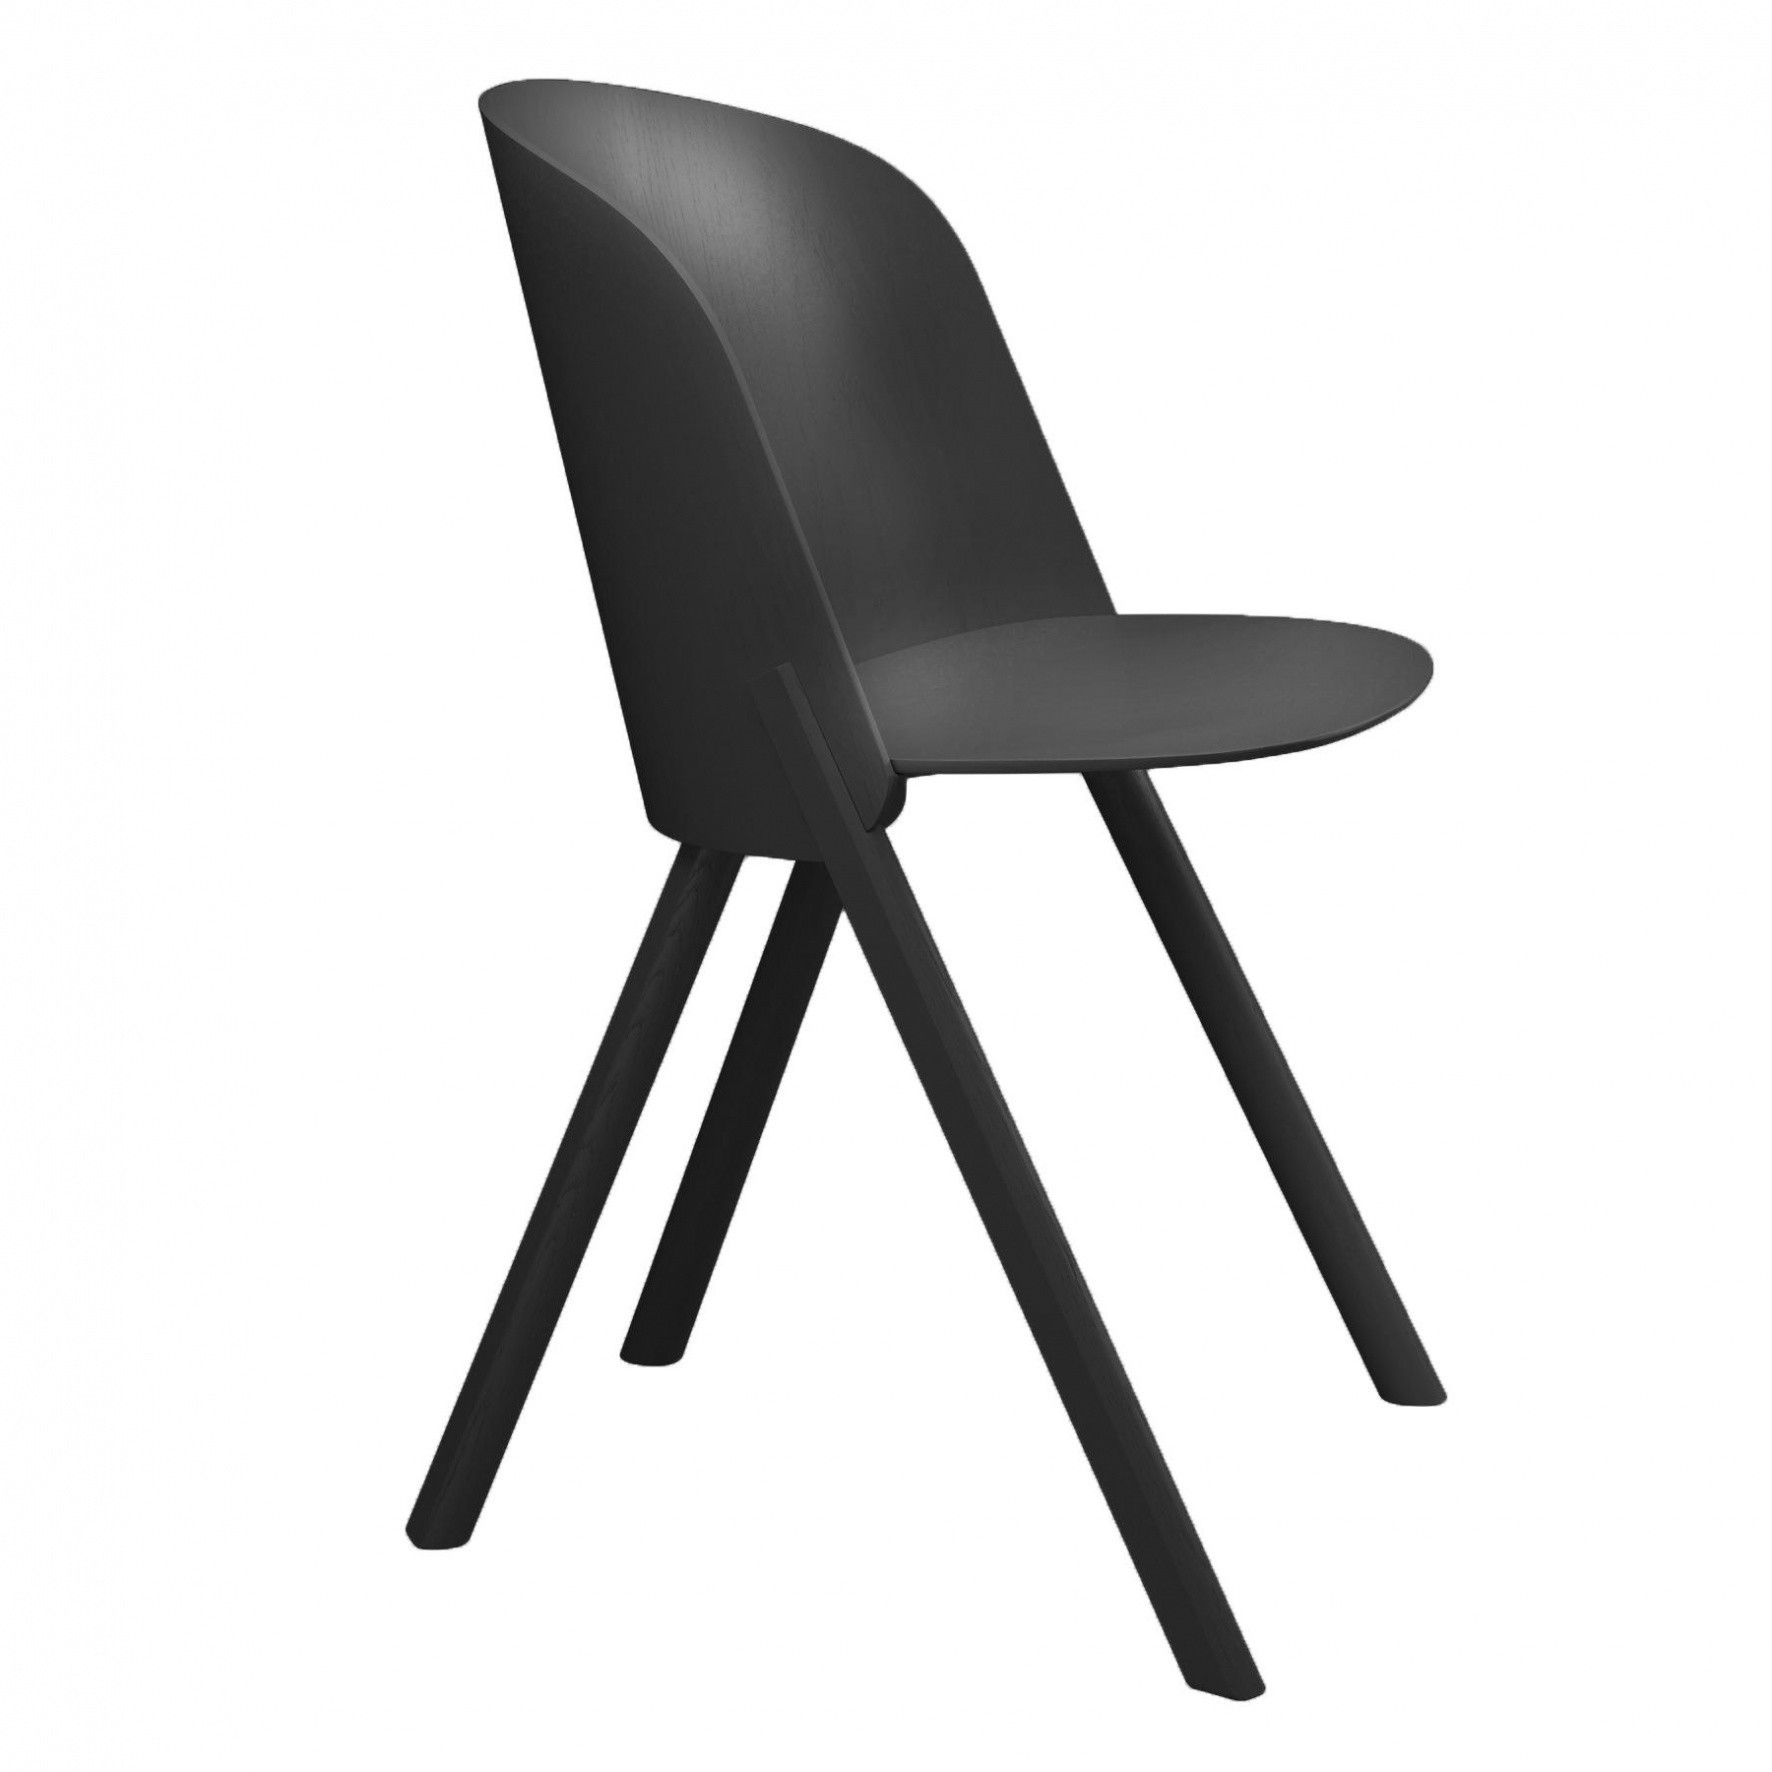 e15 ch05 this chair ambientedirect rh ambientedirect com